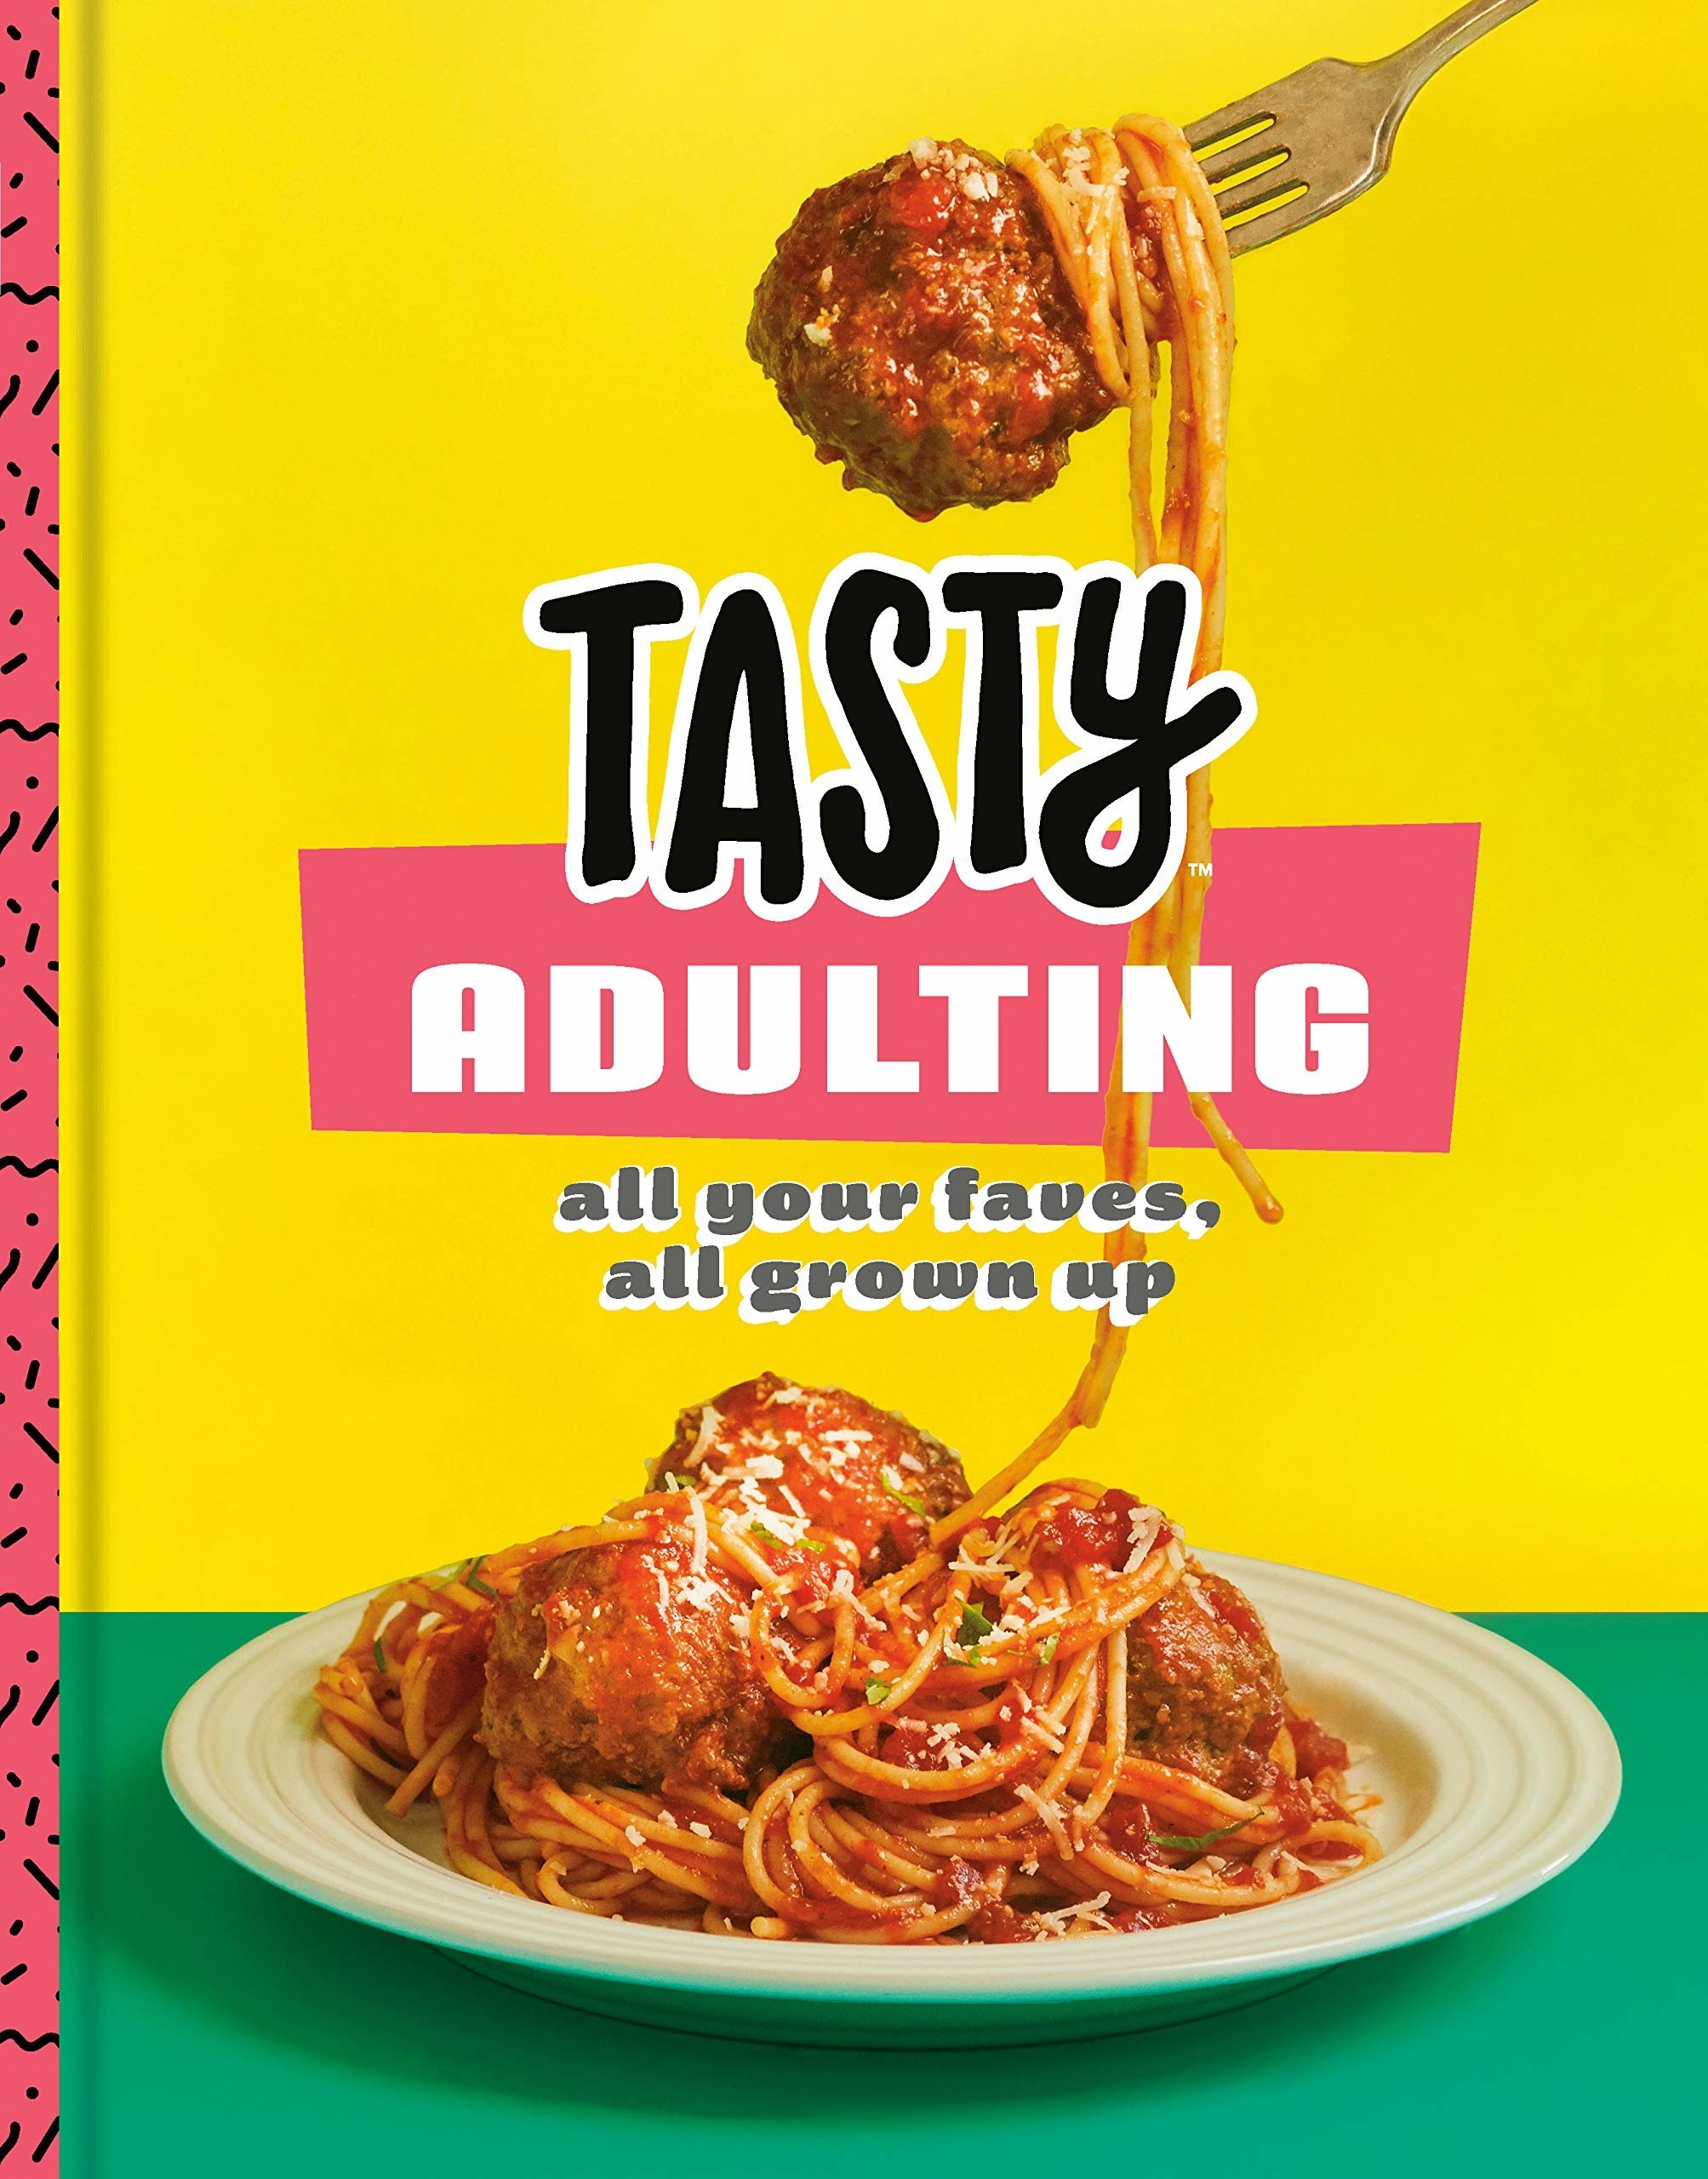 Tasty Adulting cookbook cover